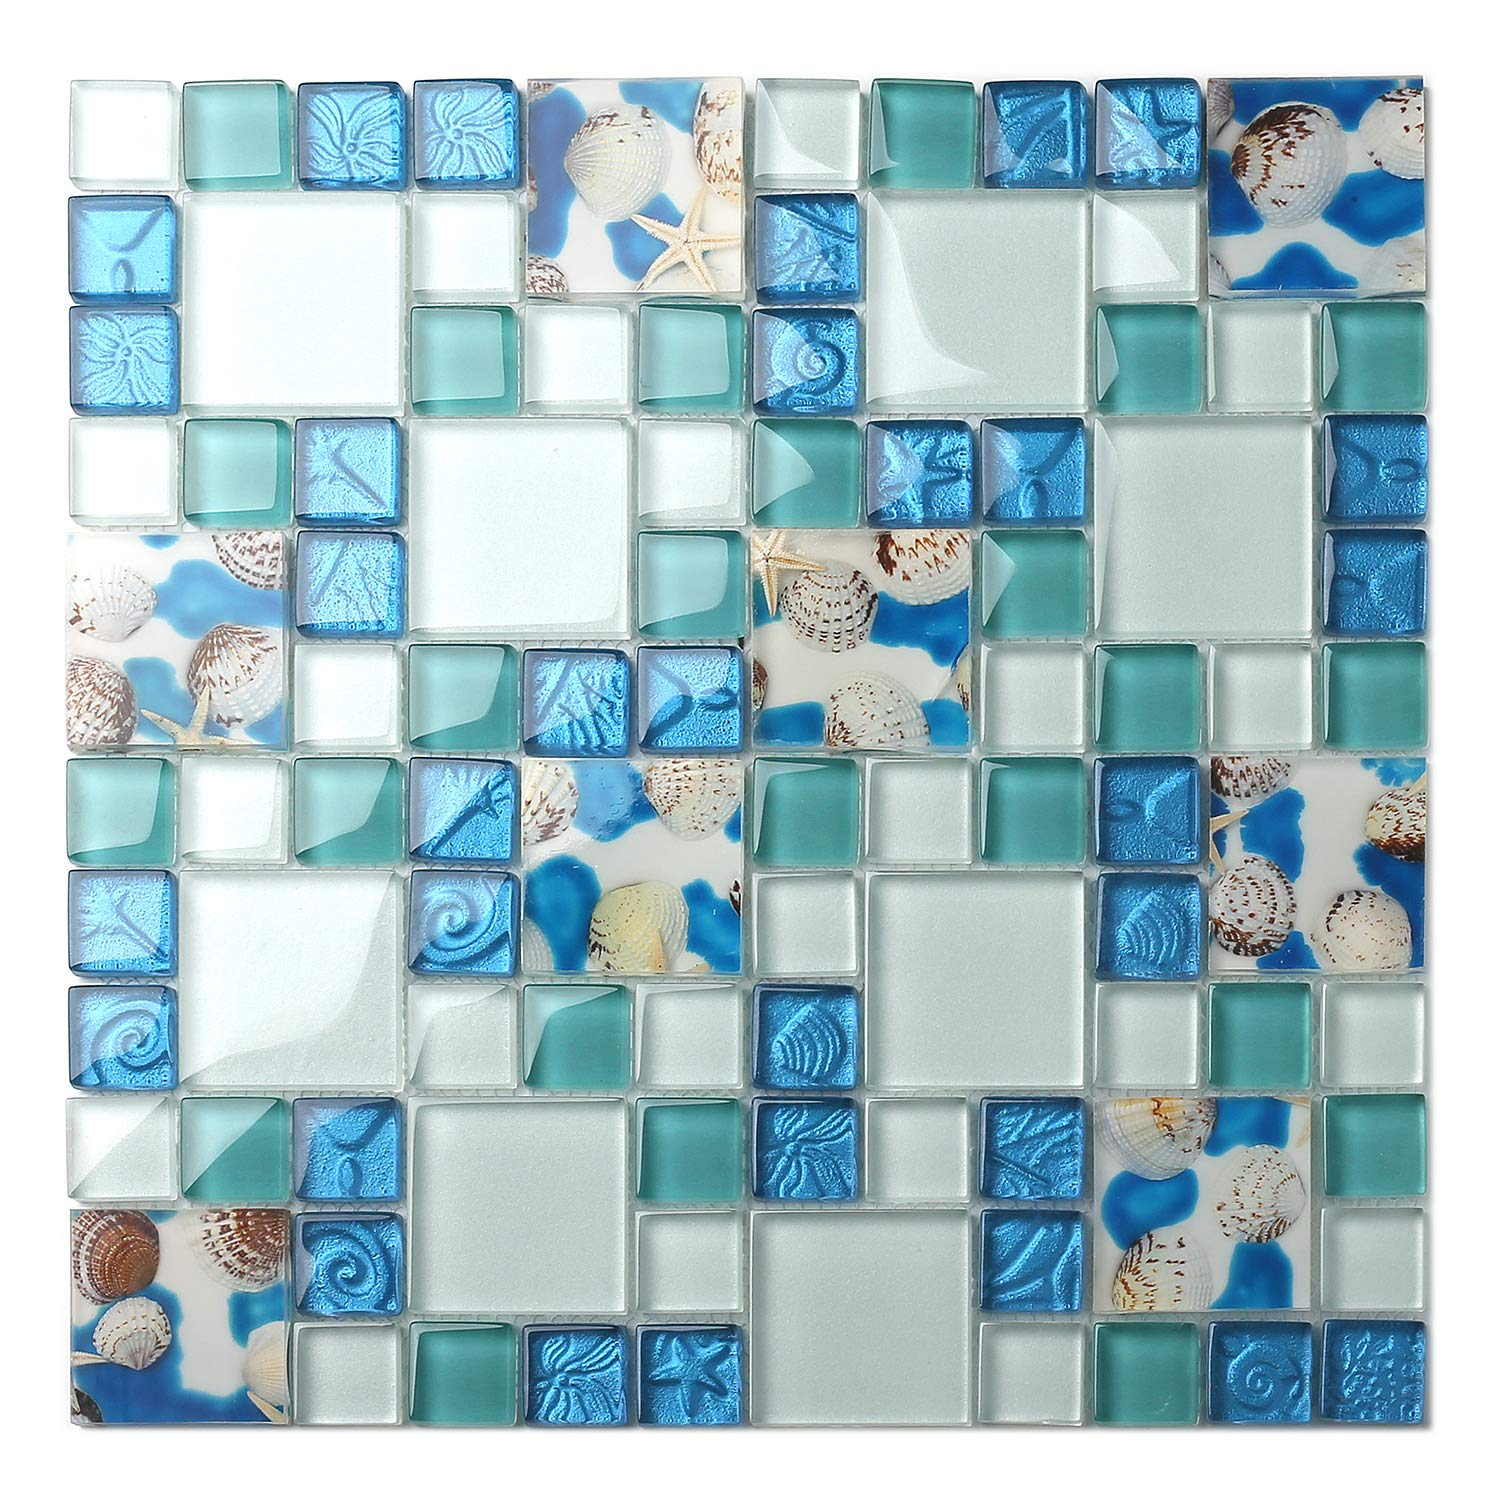 TST Mosaic Tiles Glass Conch Tiles Beach Style Sea Blue Glass Tile Glass Mosaics Wall Art Kitchen Backsplash Bathroom Design TSTGT370 (1 Sample 12x12 Inches) by BLUJELLYFISH